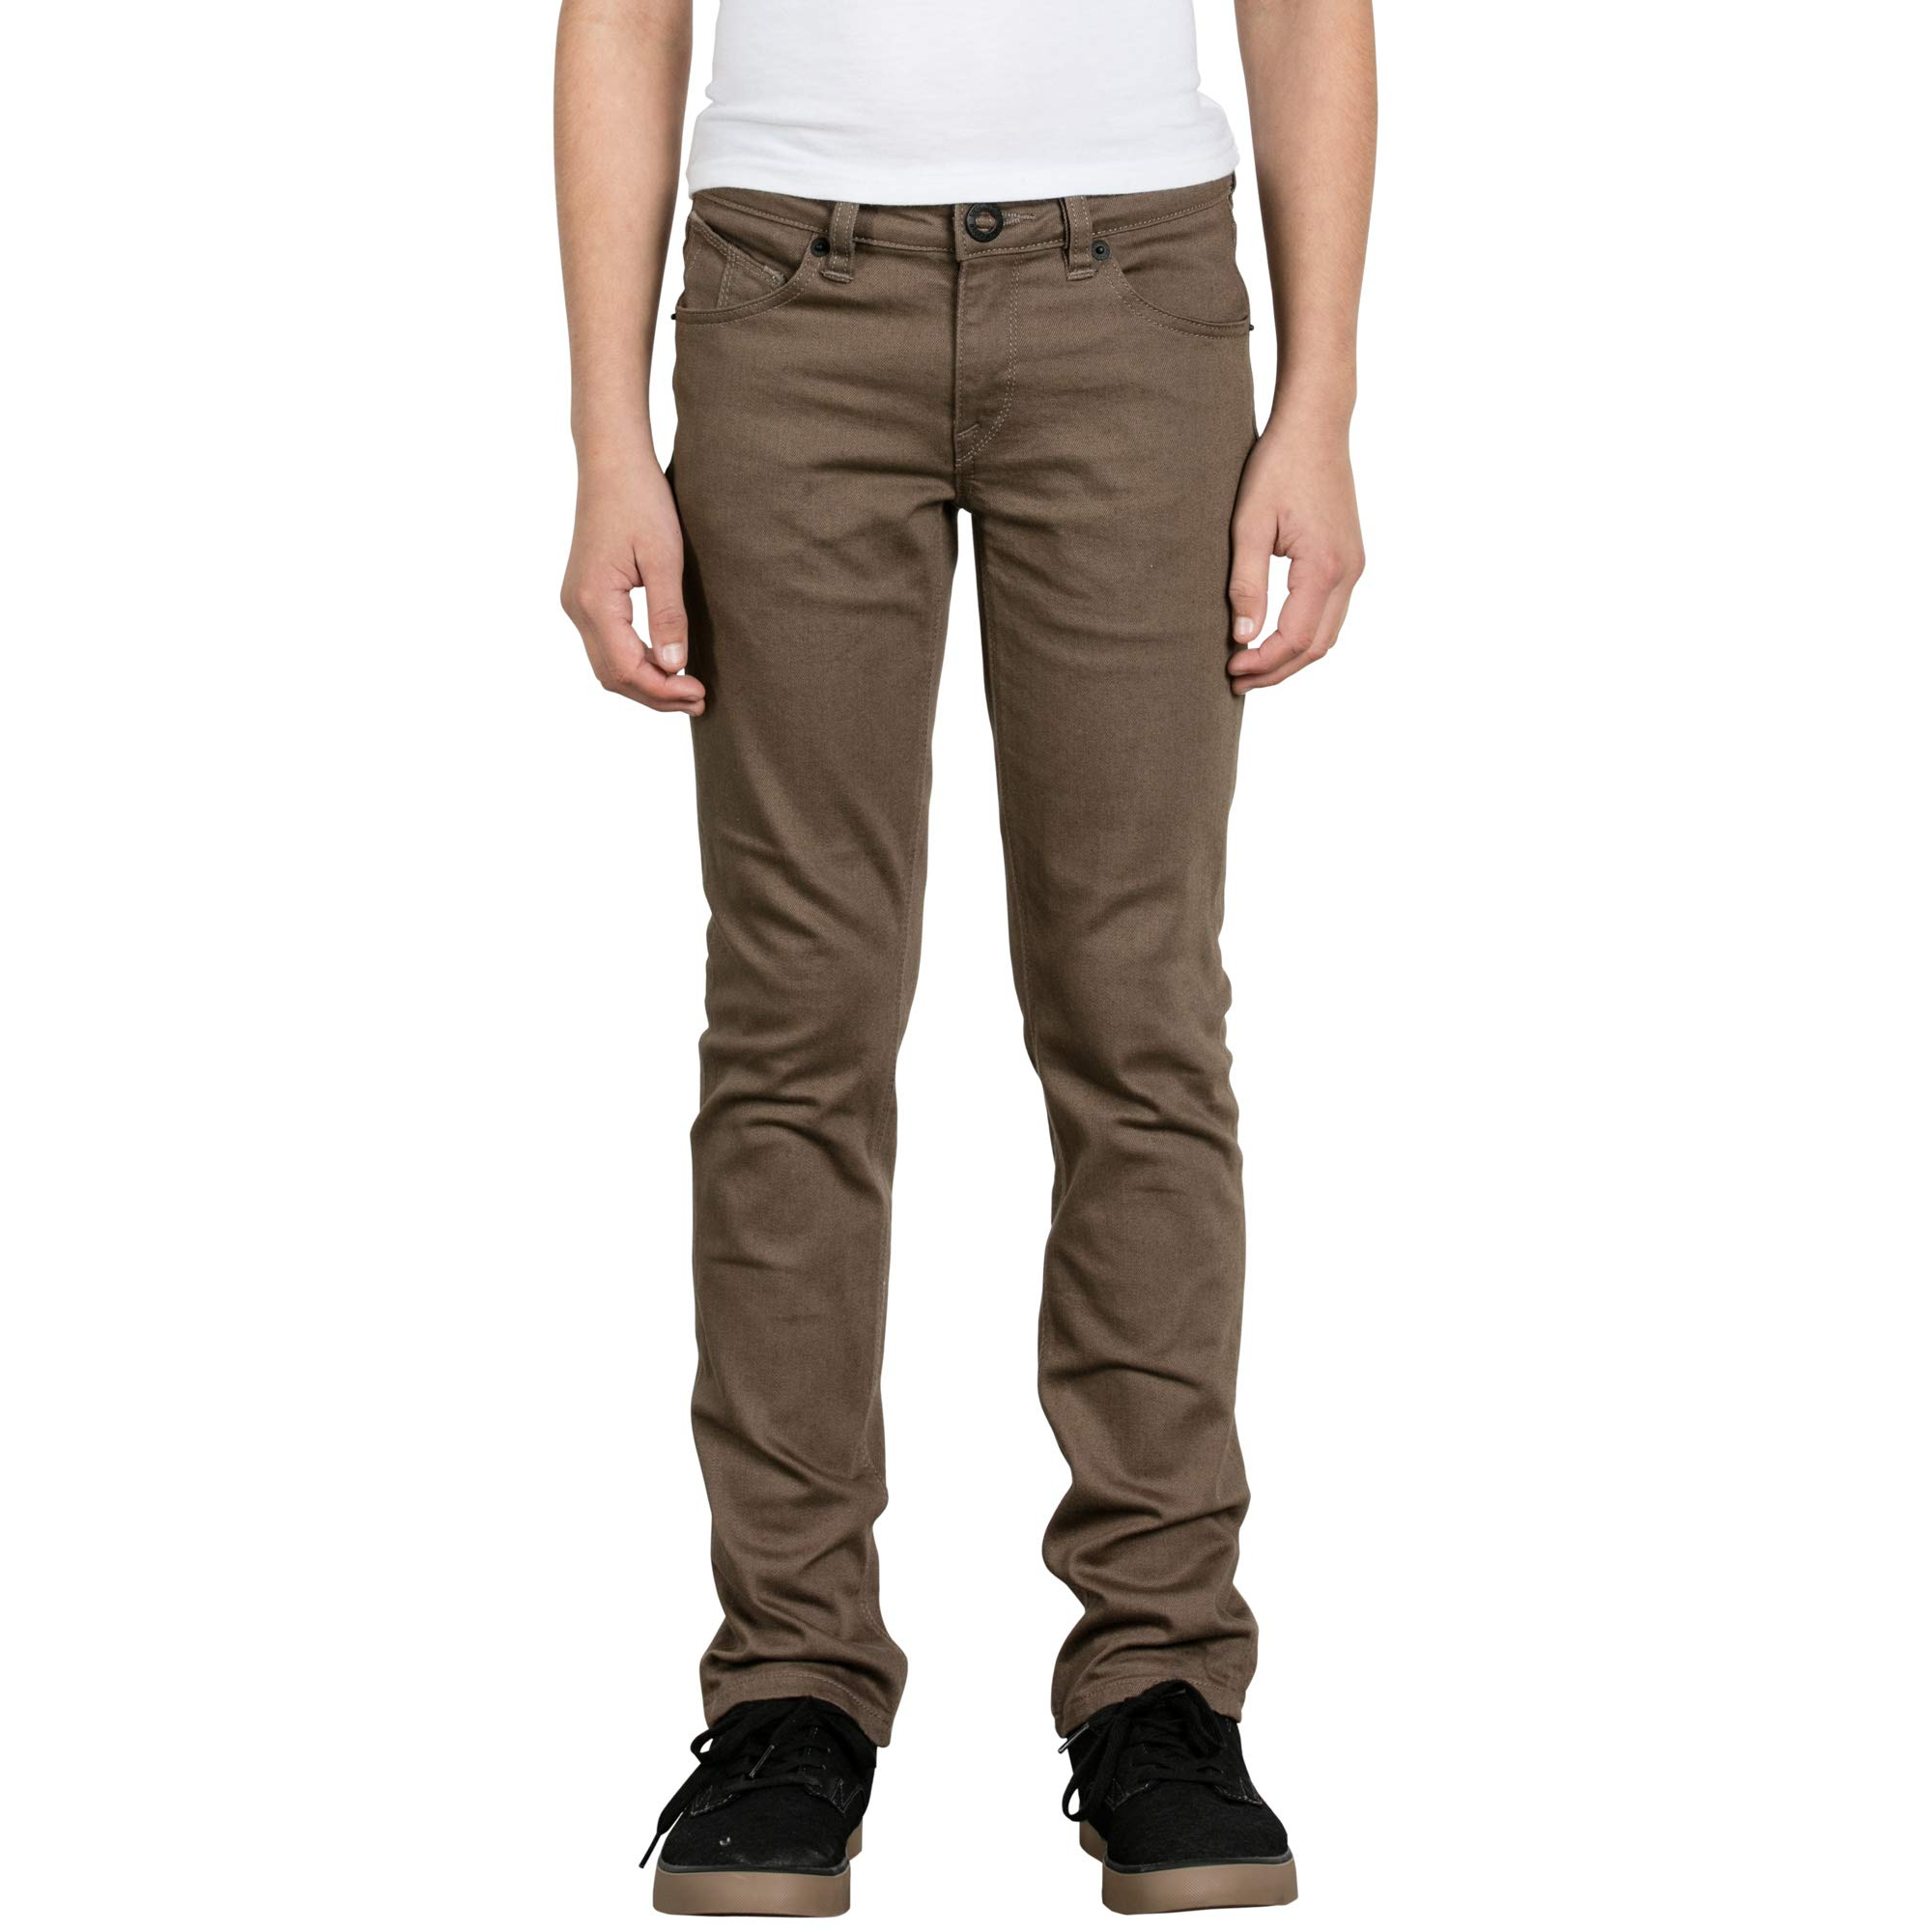 Volcom Big Boys' Vorta 5 Pocket Slub Slim Fit Pant, Mushroom, 30